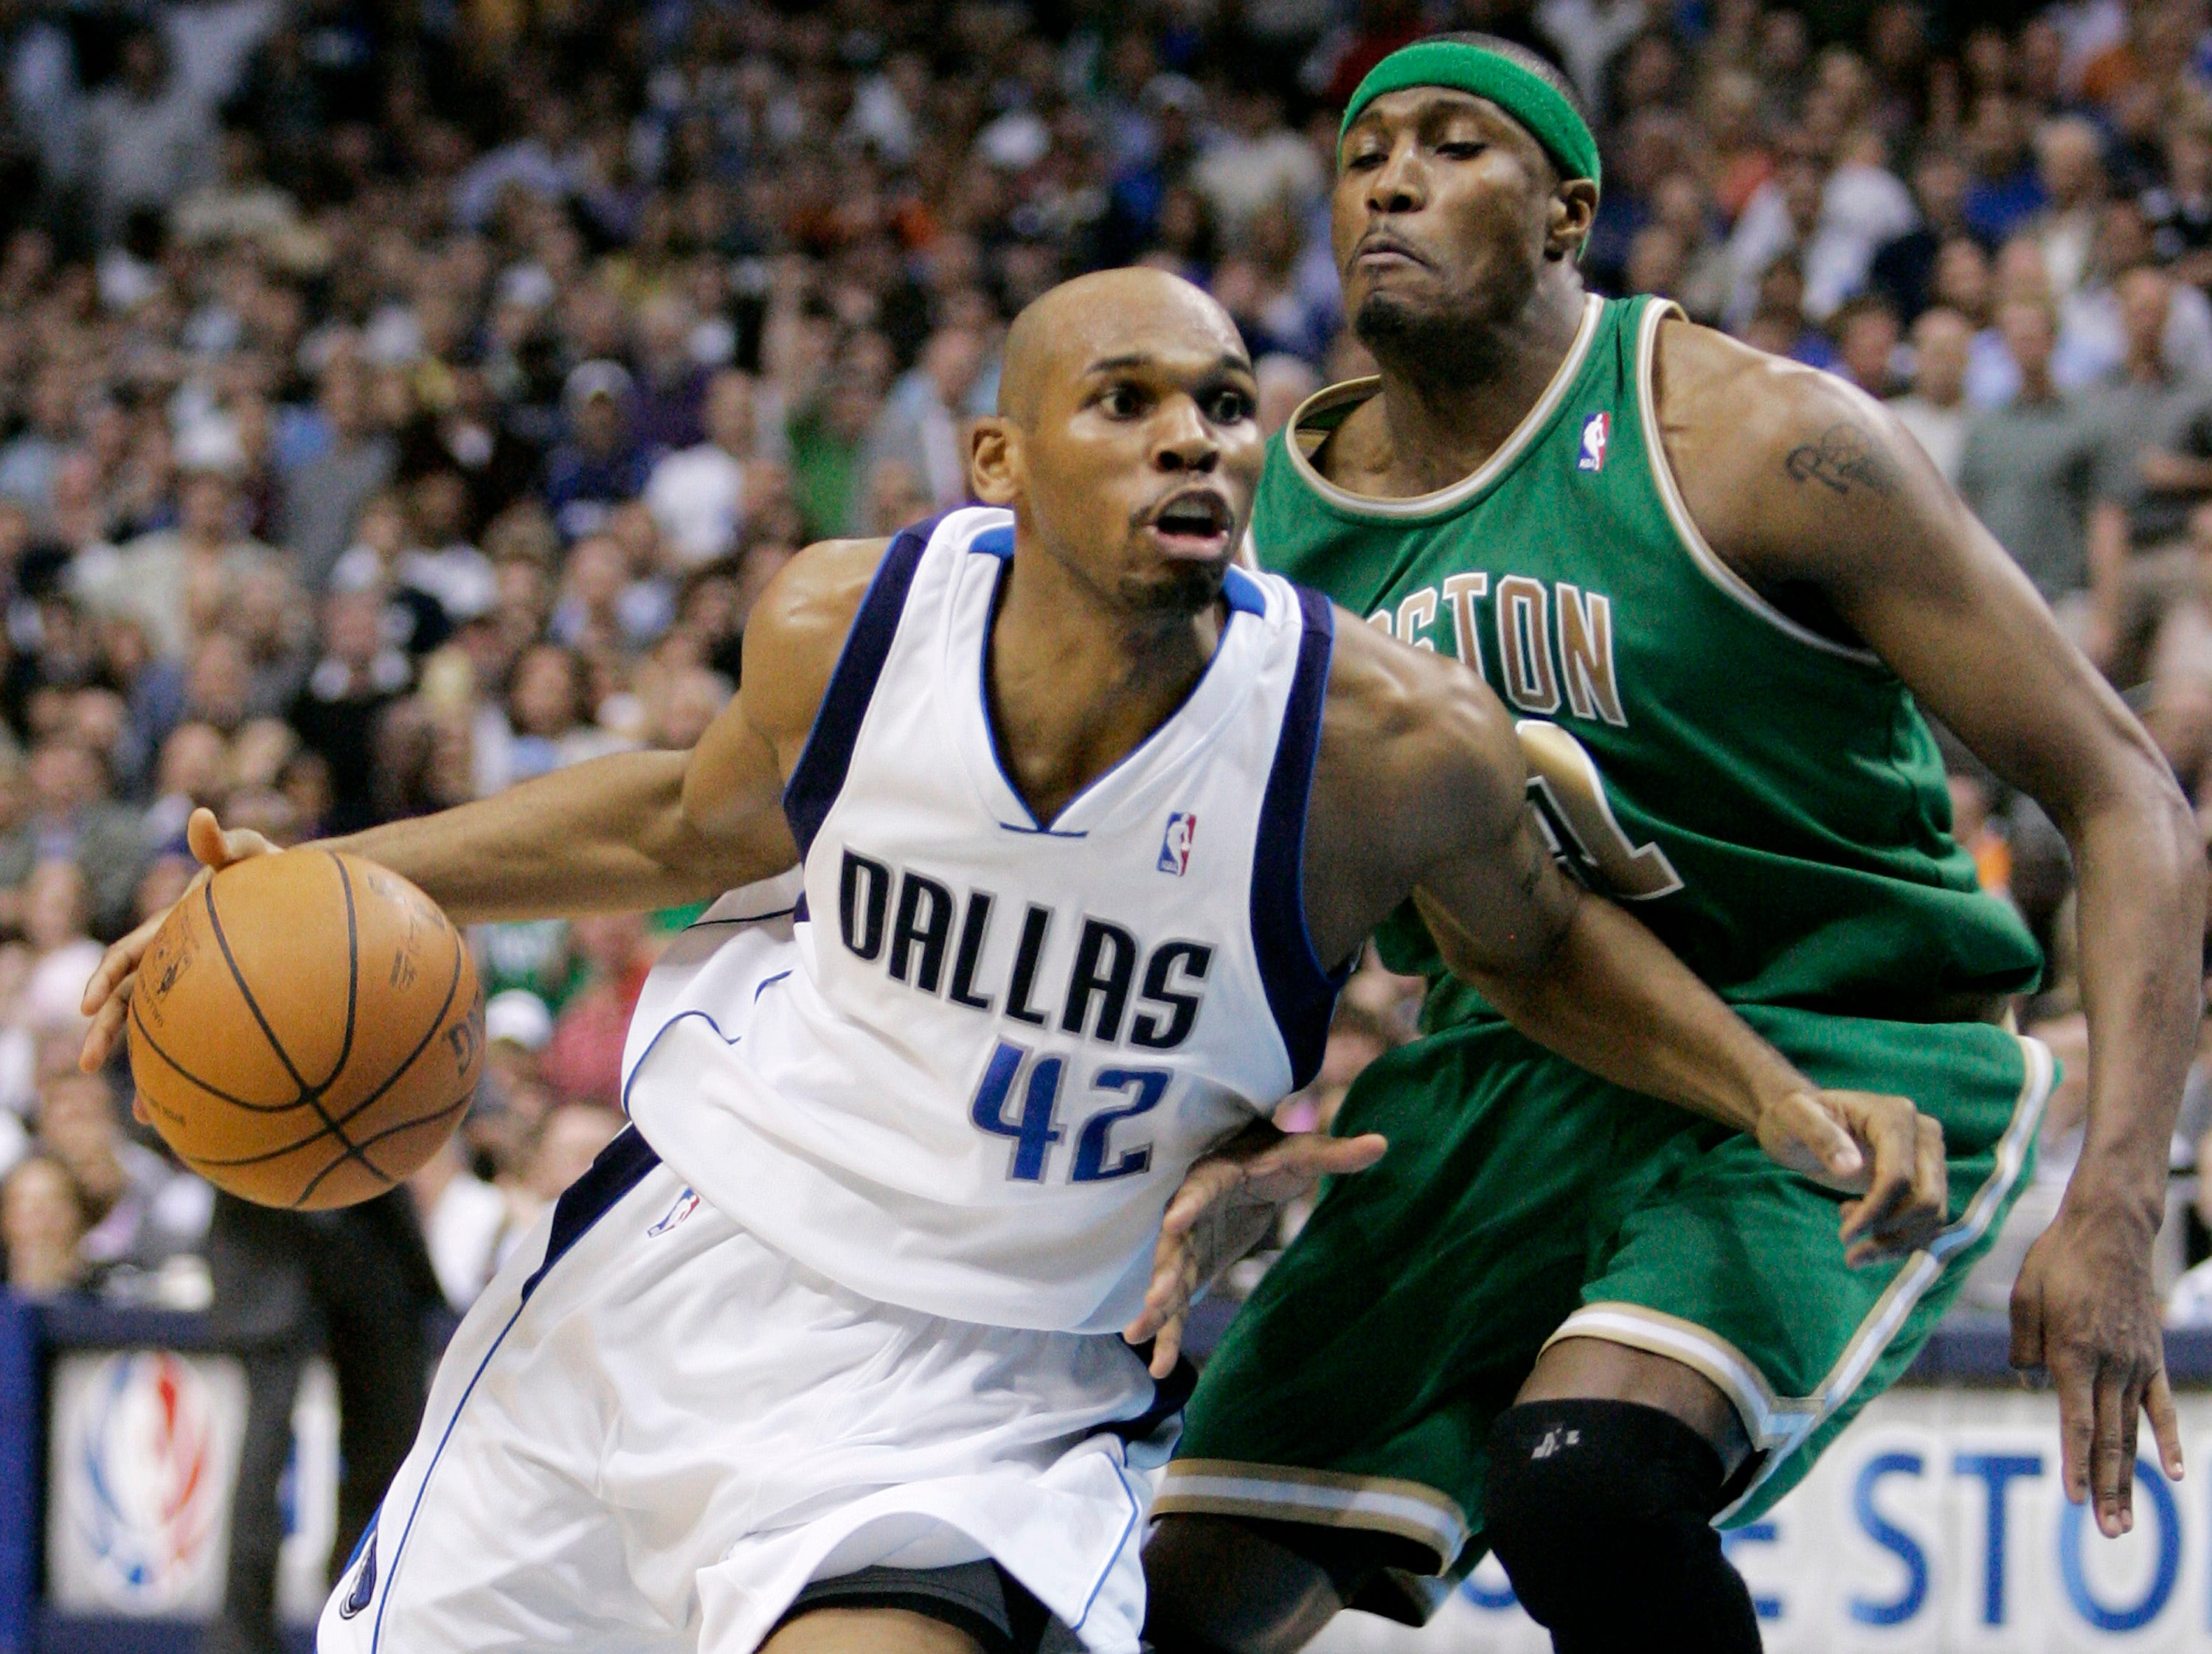 Dallas Mavericks guard Jerry Stackhouse (42) drives past Boston Celtics forward James Posey, right, in the second half of an NBA basketball game in Dallas, Thursday, March 20, 2008. The Celtics won 94-90.